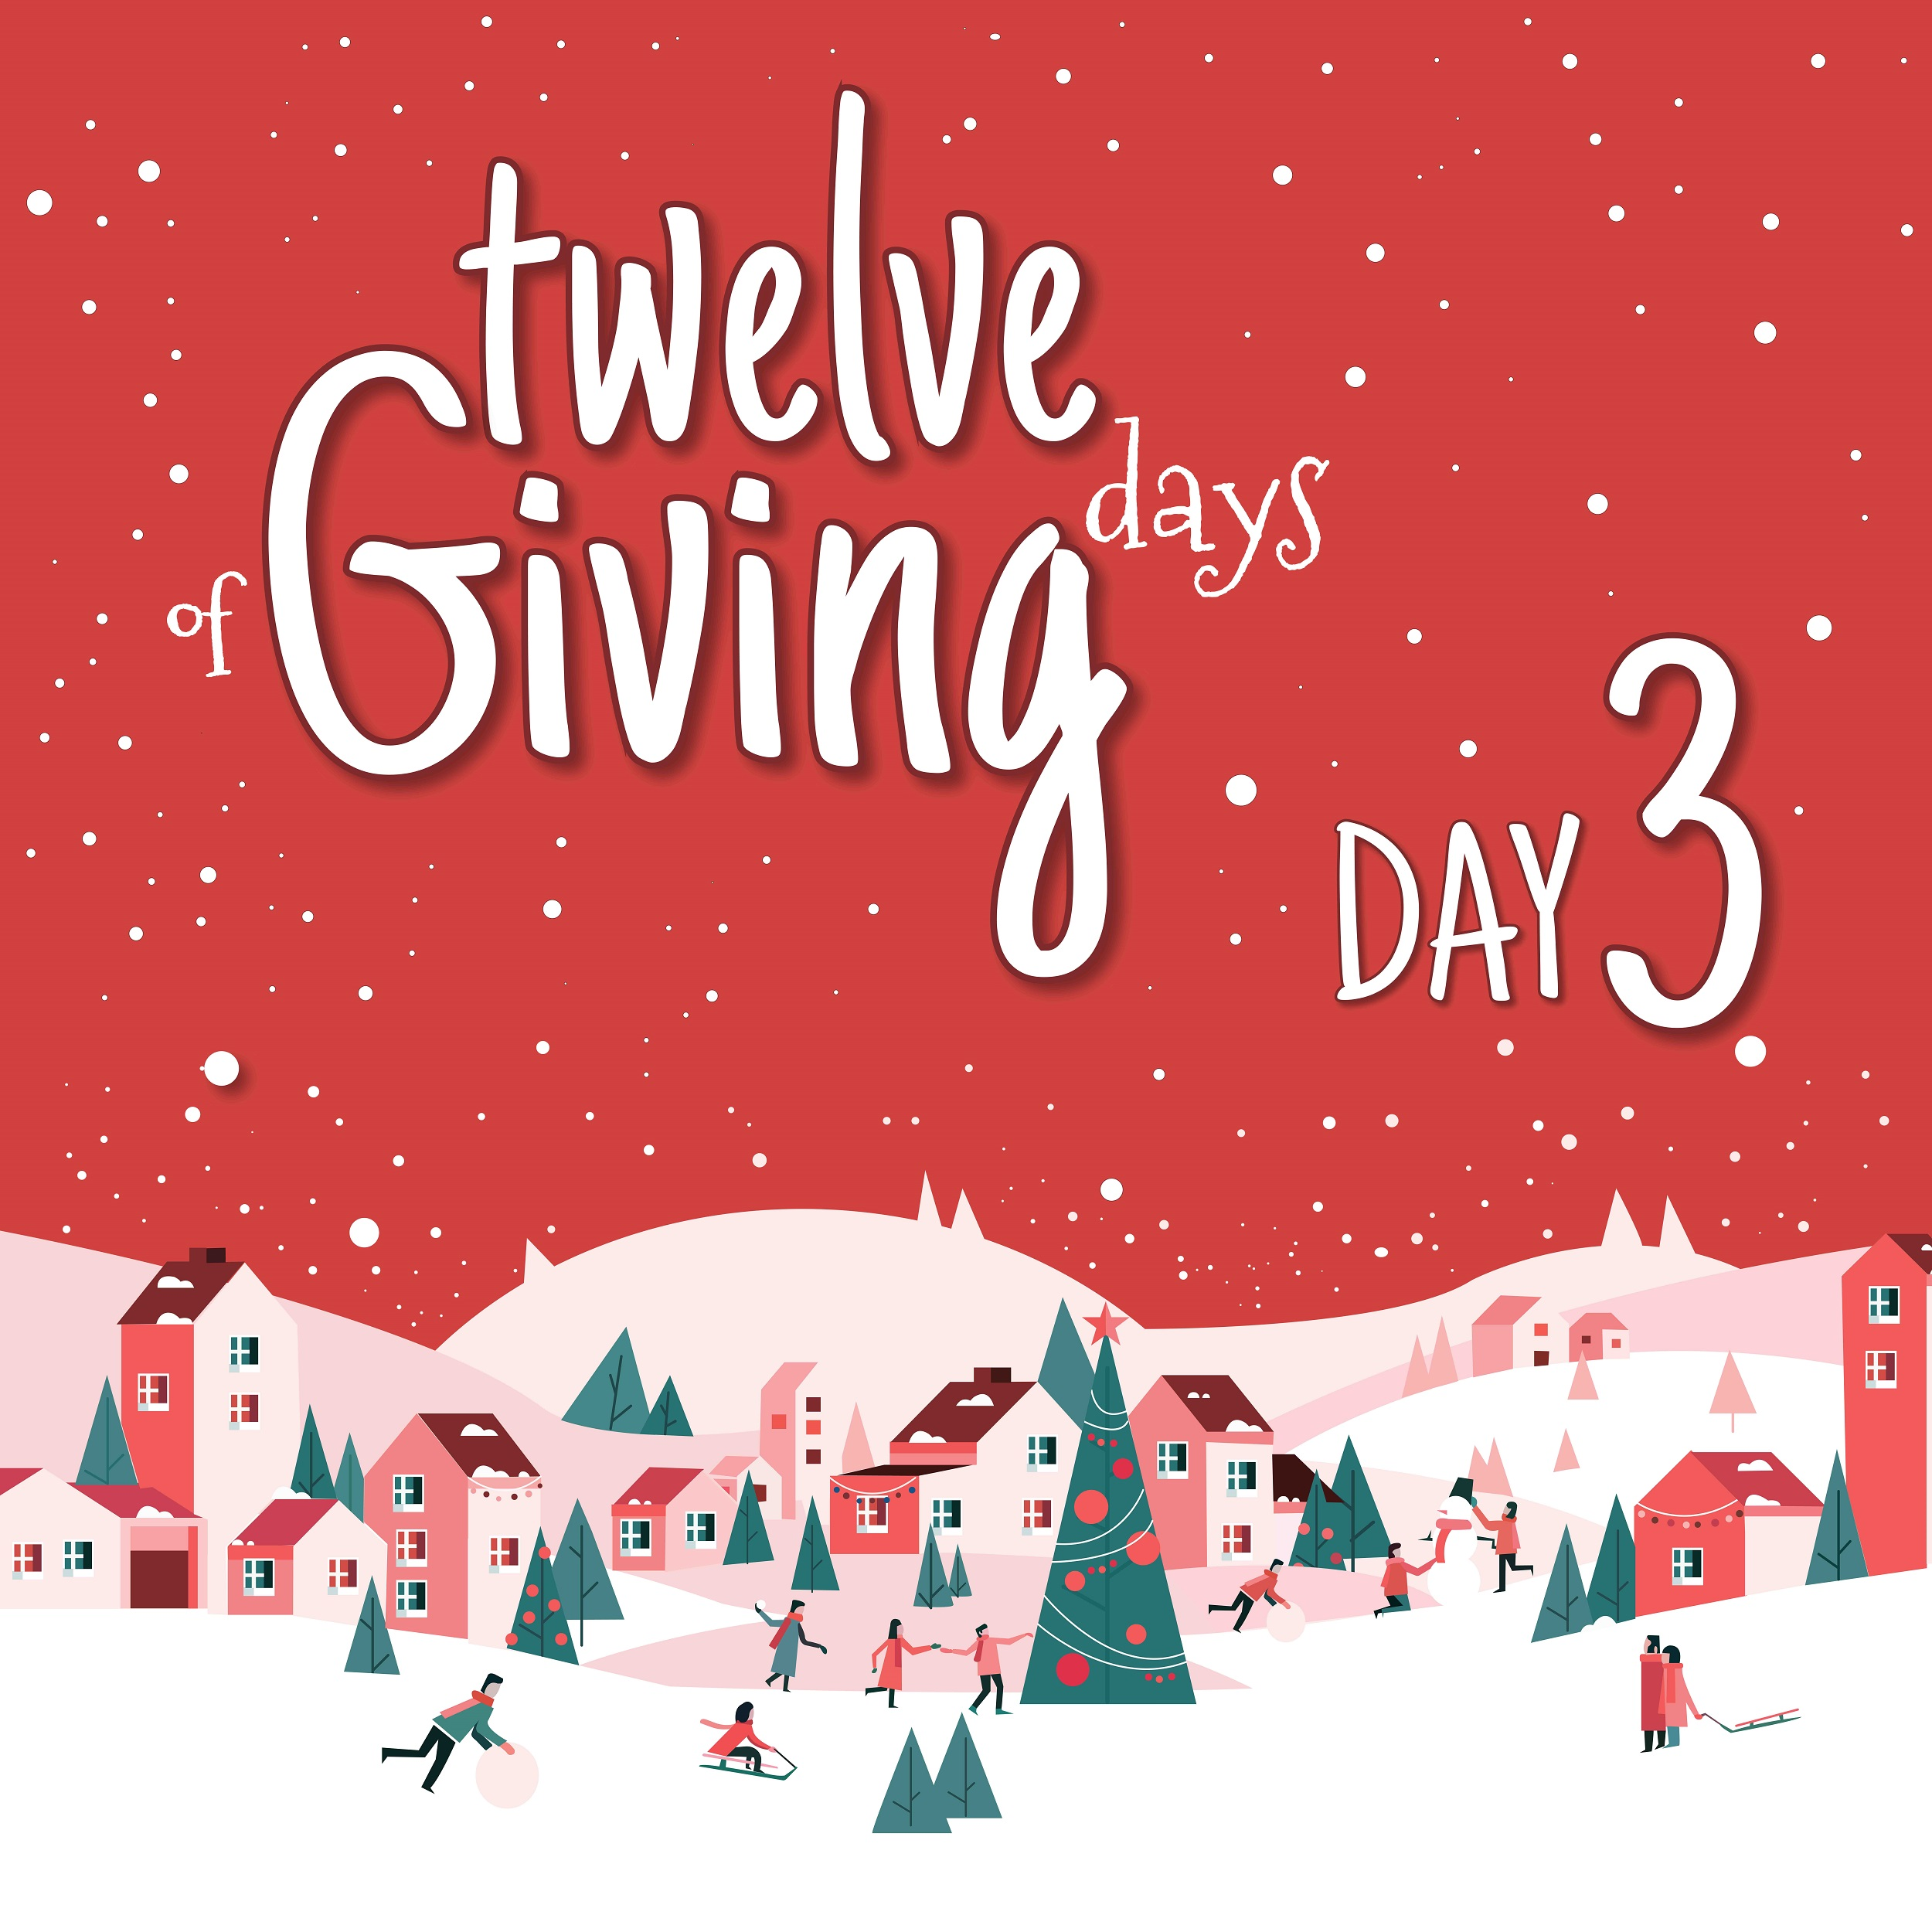 Day 3 of 12 Days of Giving GIVEAWAY with Creative Scrapbooker Magazine Graphics